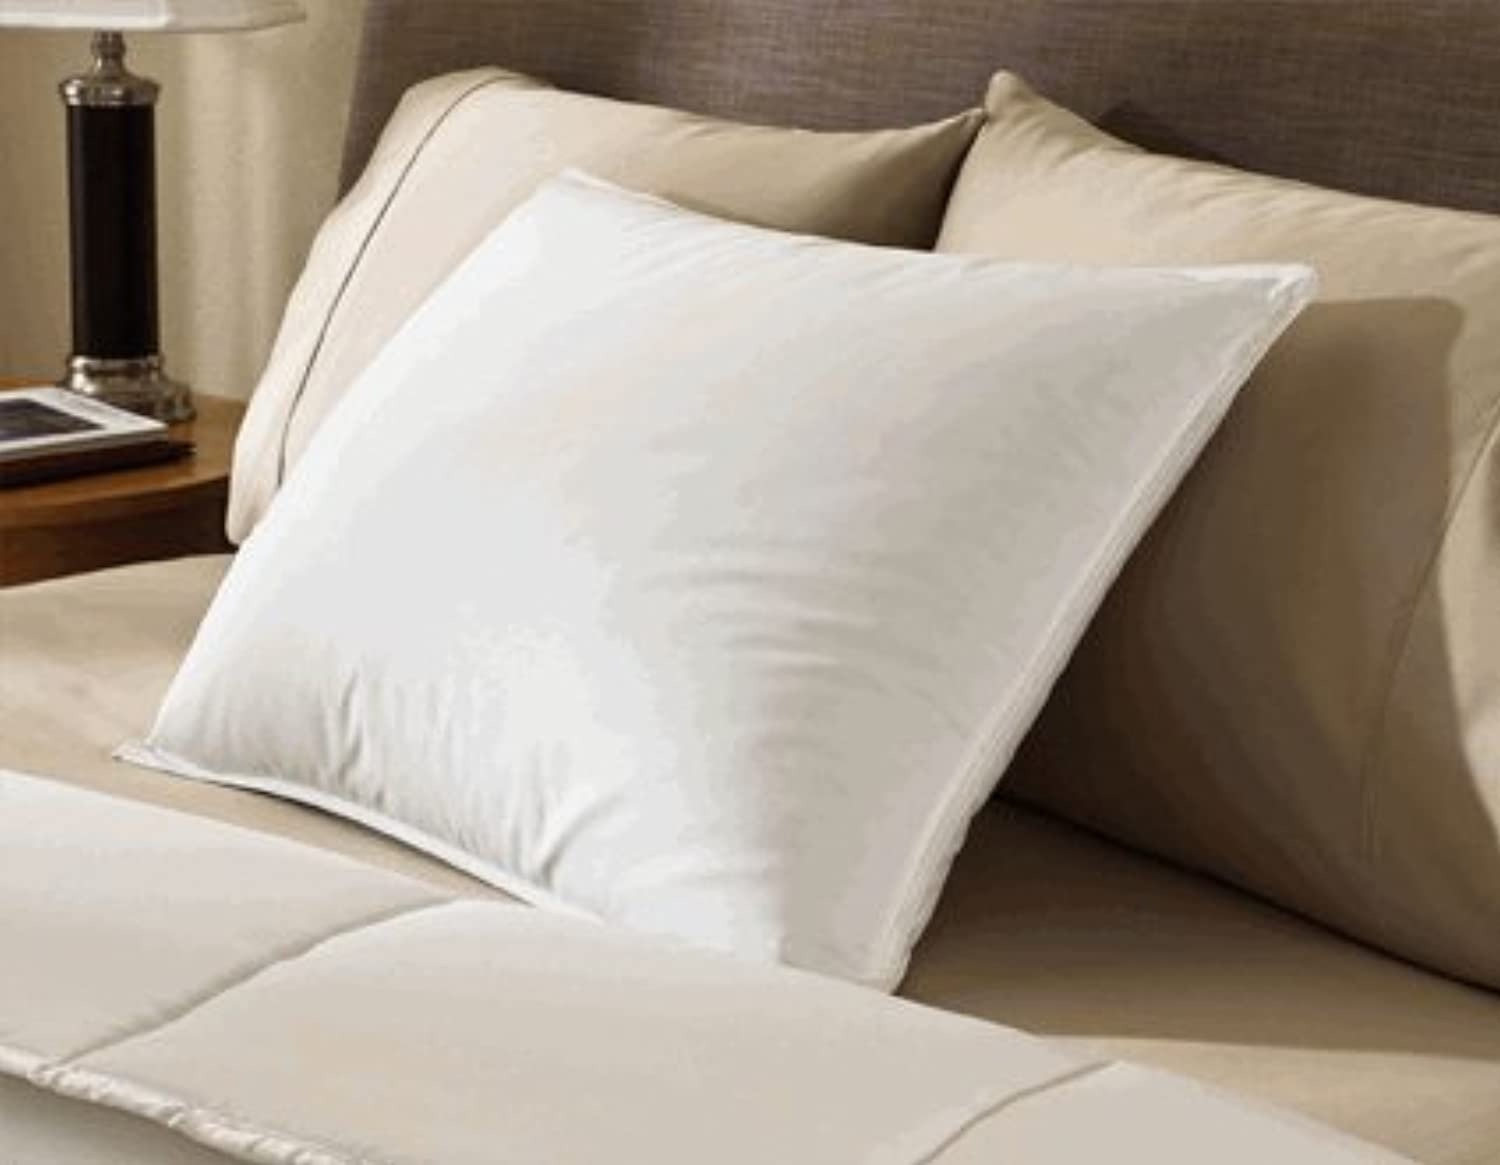 Encompass Group ? 50 50 White Duck Feather and Down Pillow - Queen Size